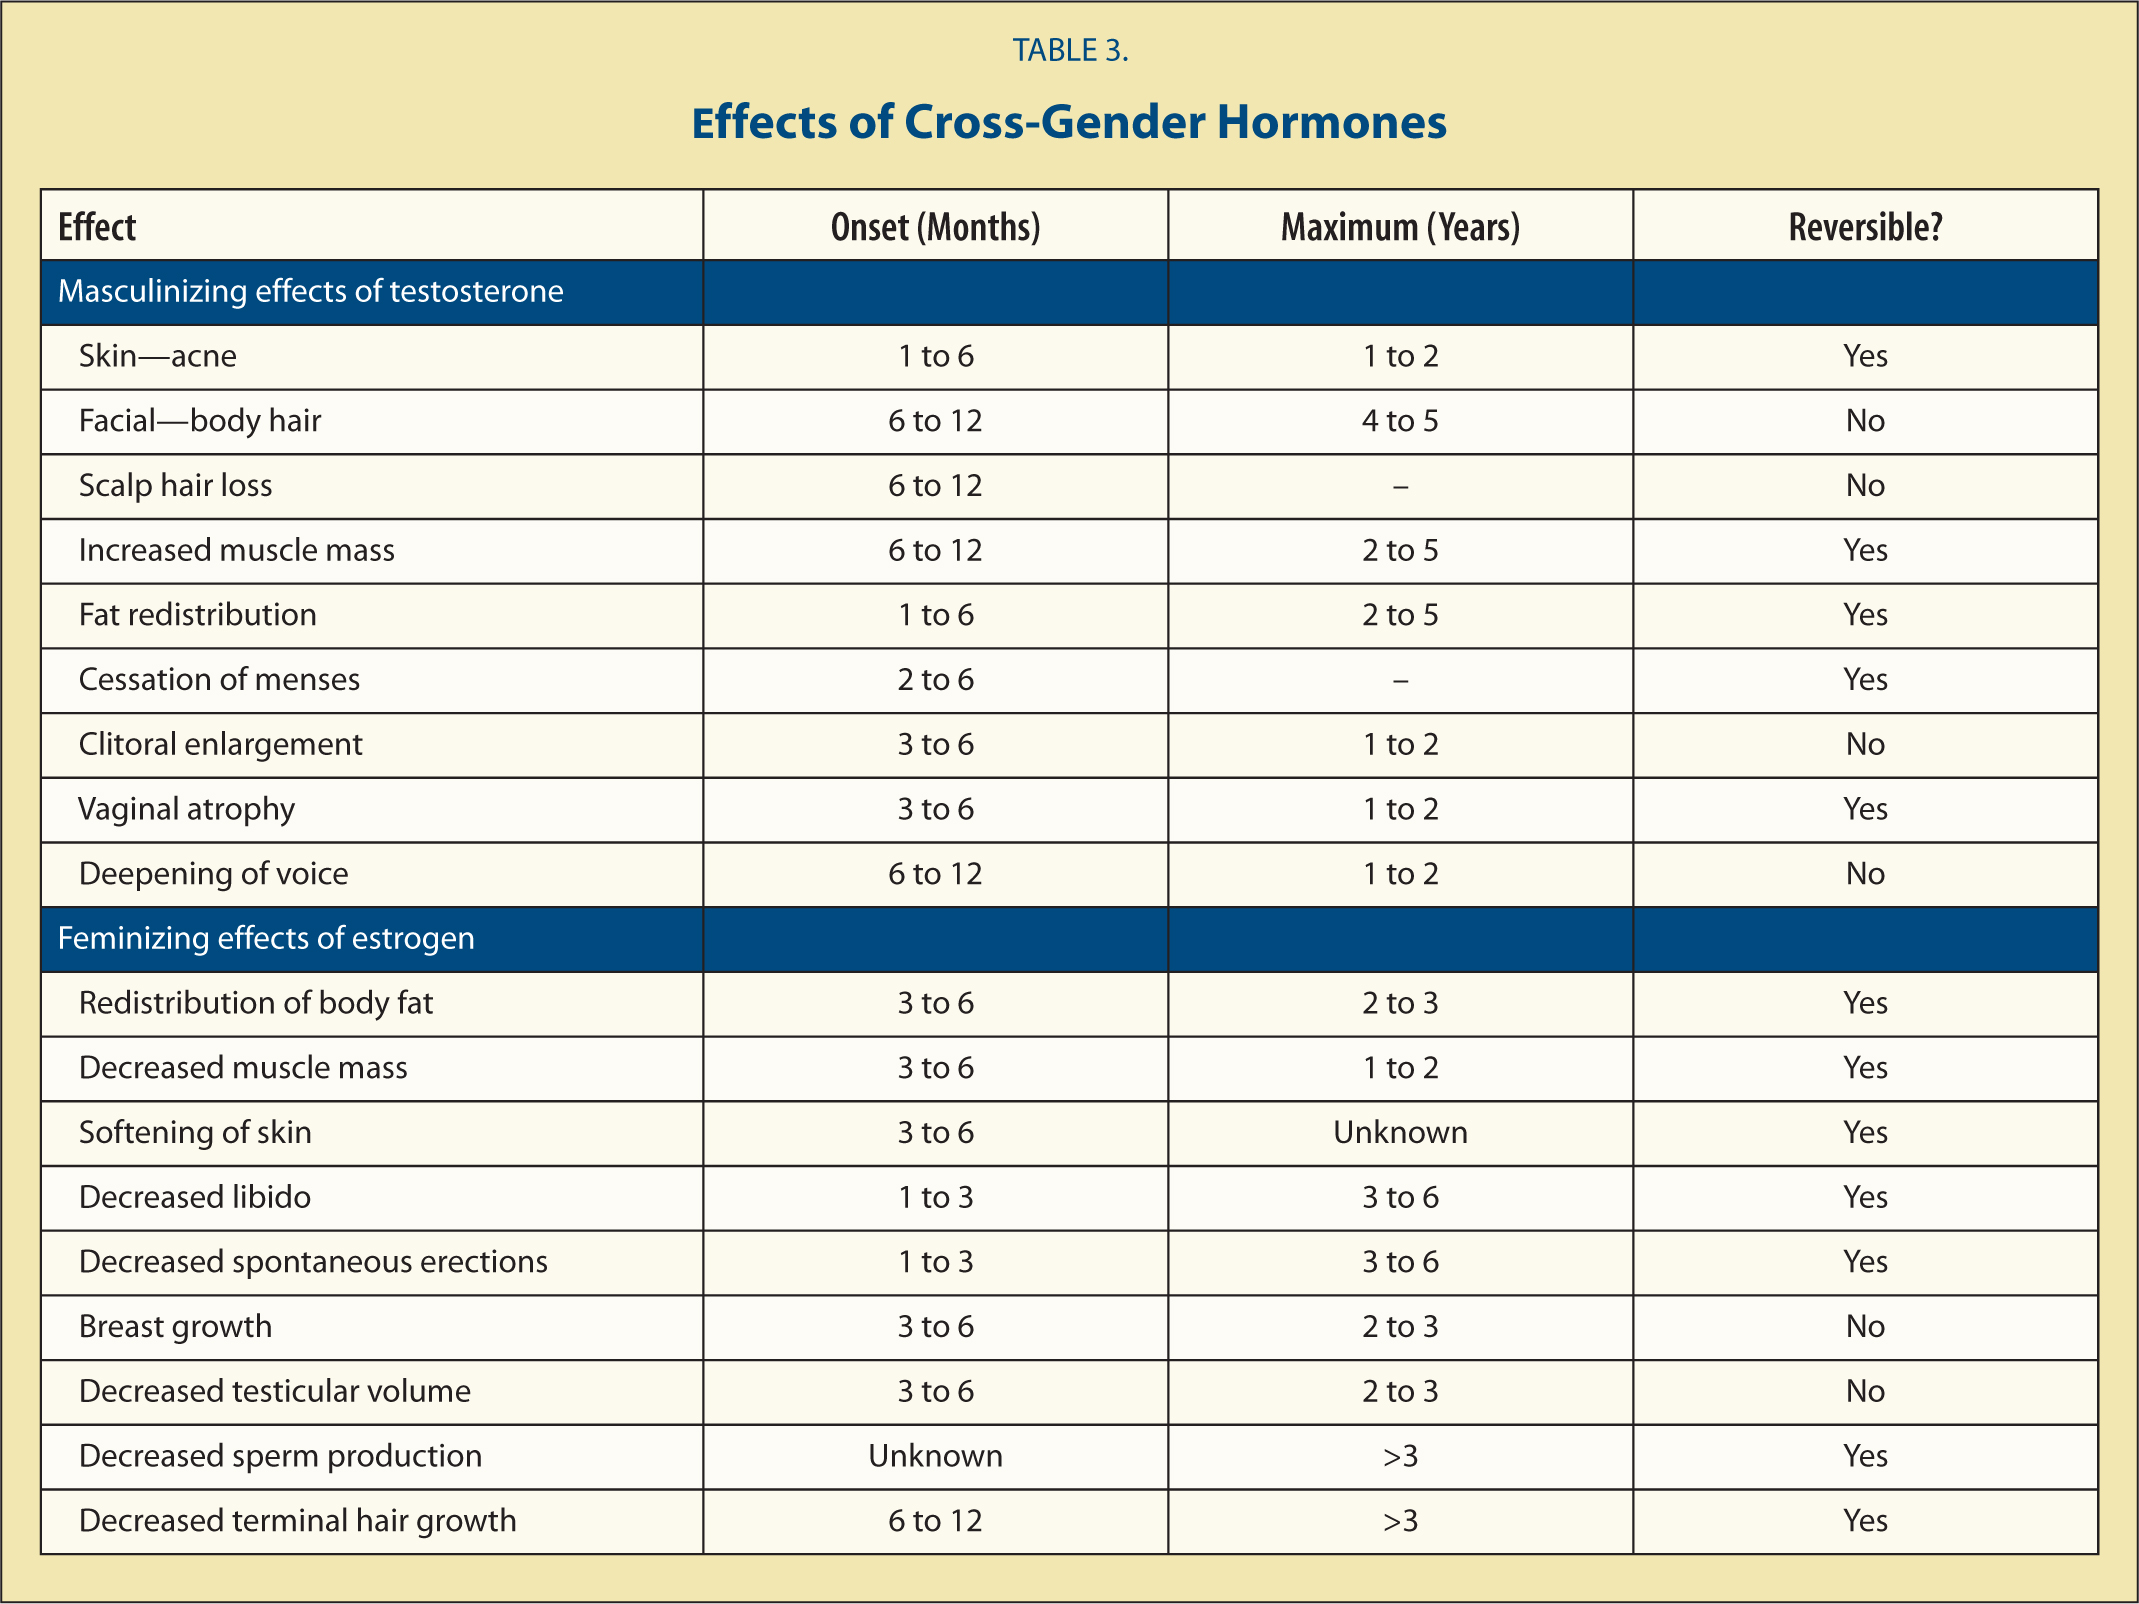 Effects of Cross-Gender Hormones